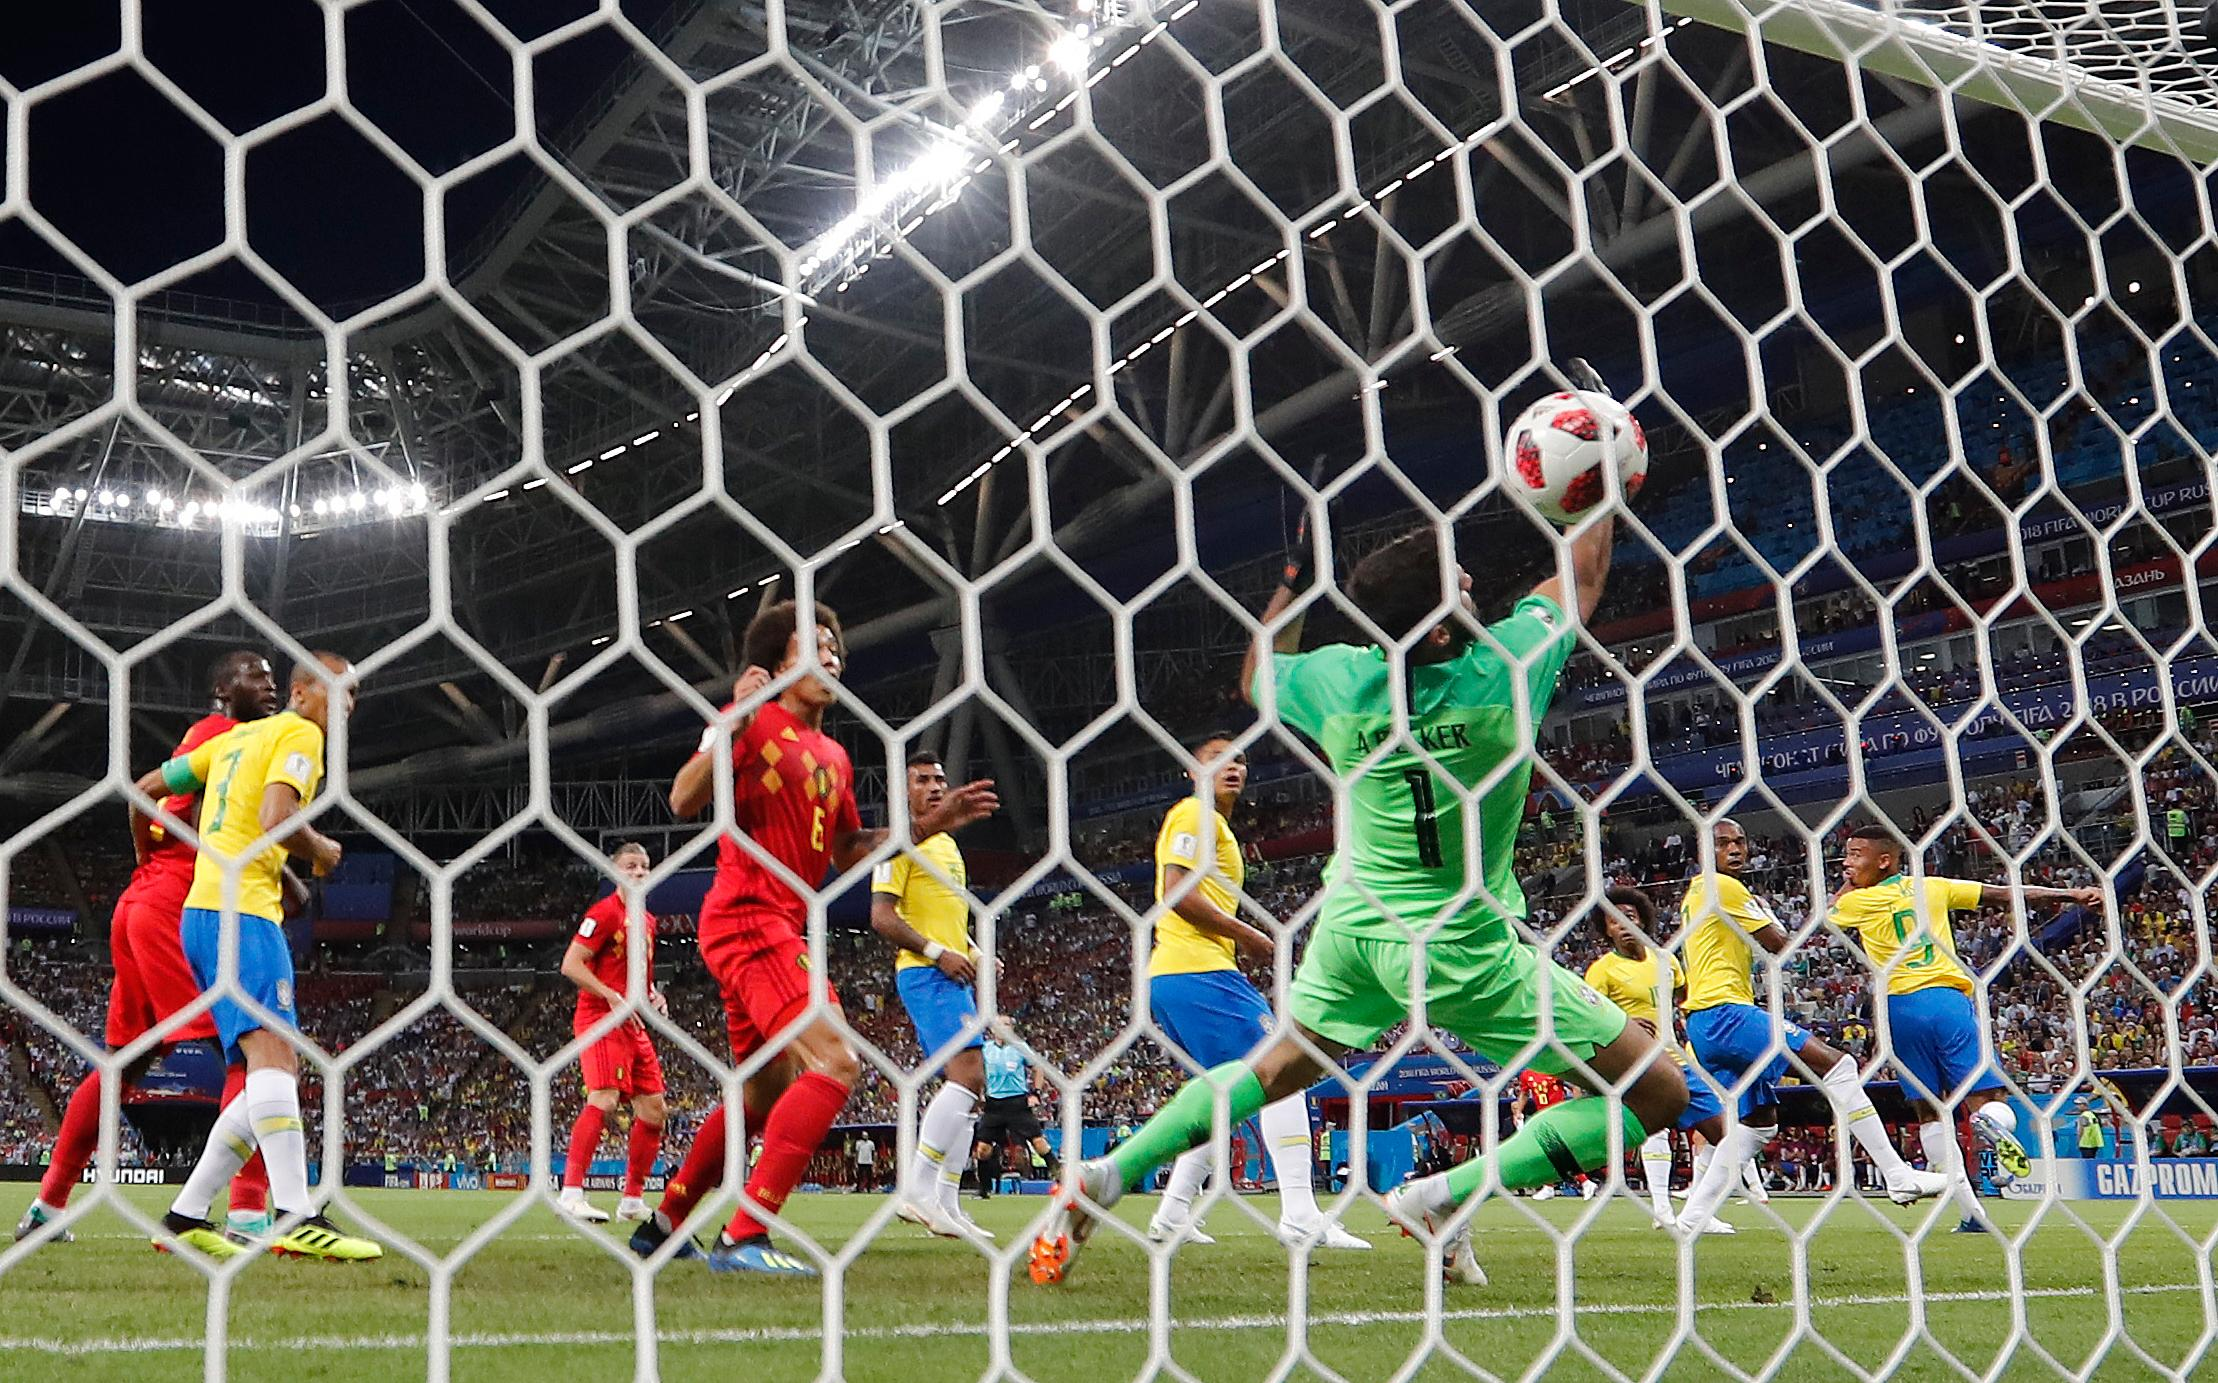 Brazil's Fernandinho, second right, scores an own goal past Brazil goalkeeper Alisson during the quarterfinal match between Brazil and Belgium at the 2018 soccer World Cup in the Kazan Arena, in Kazan, Russia, Friday, July 6, 2018. (AP Photo/Frank Augstein)